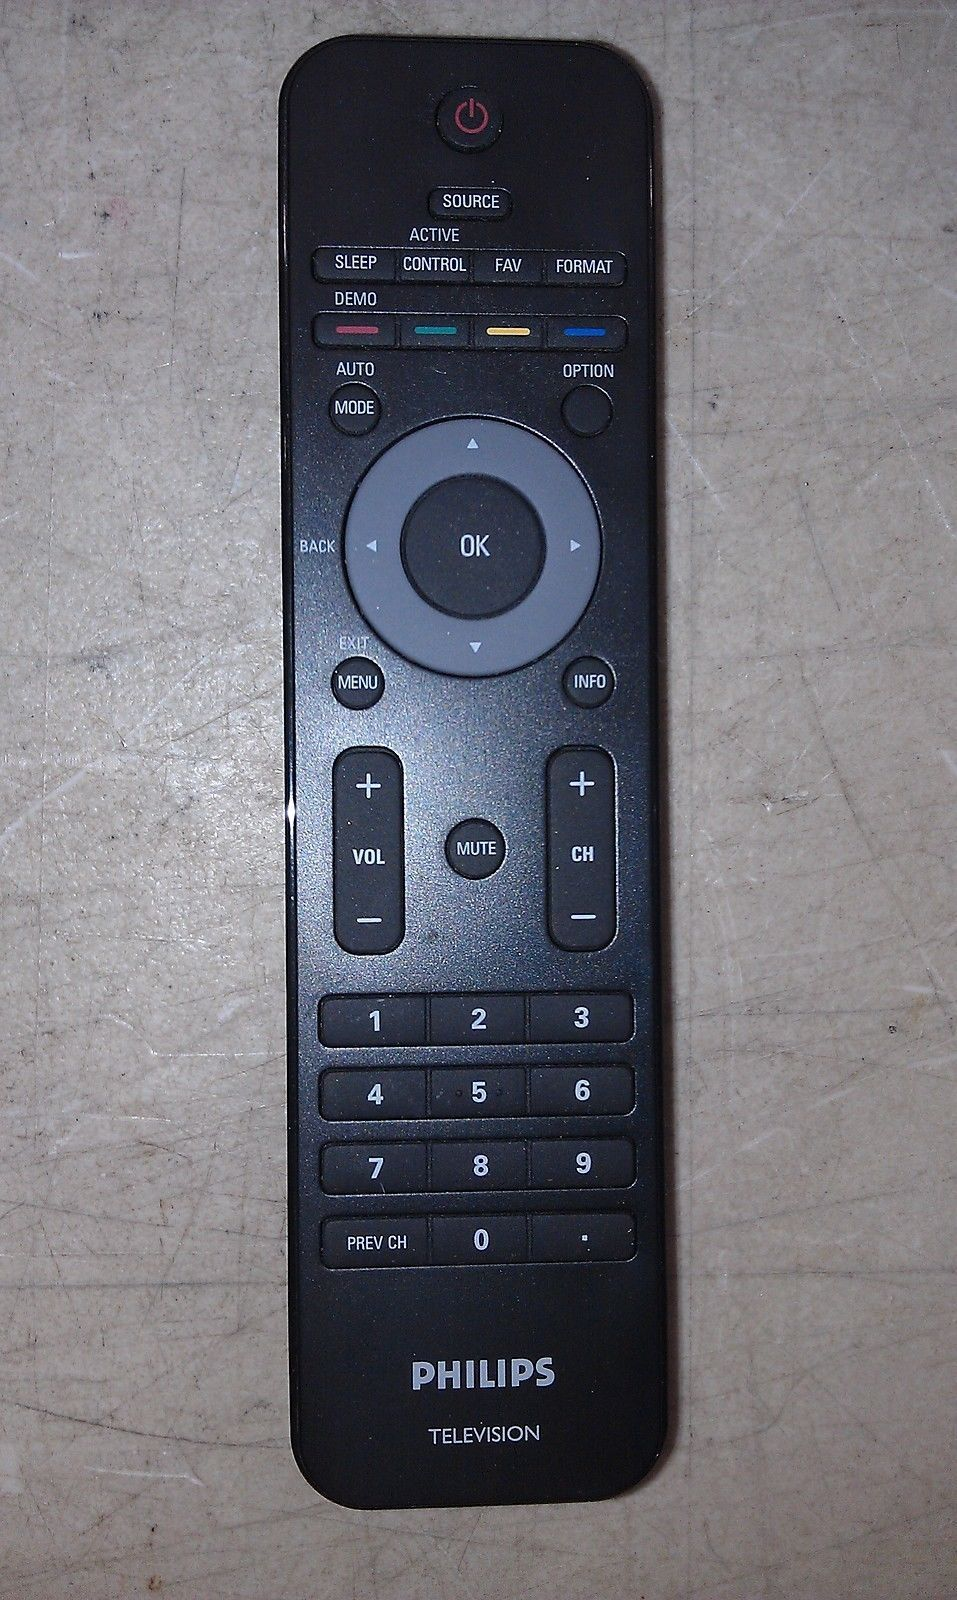 5EE44 PHILIPS LCD 52PFL7403D REMOTE CONTROL, EXTREMELY GOOD CONDITION!